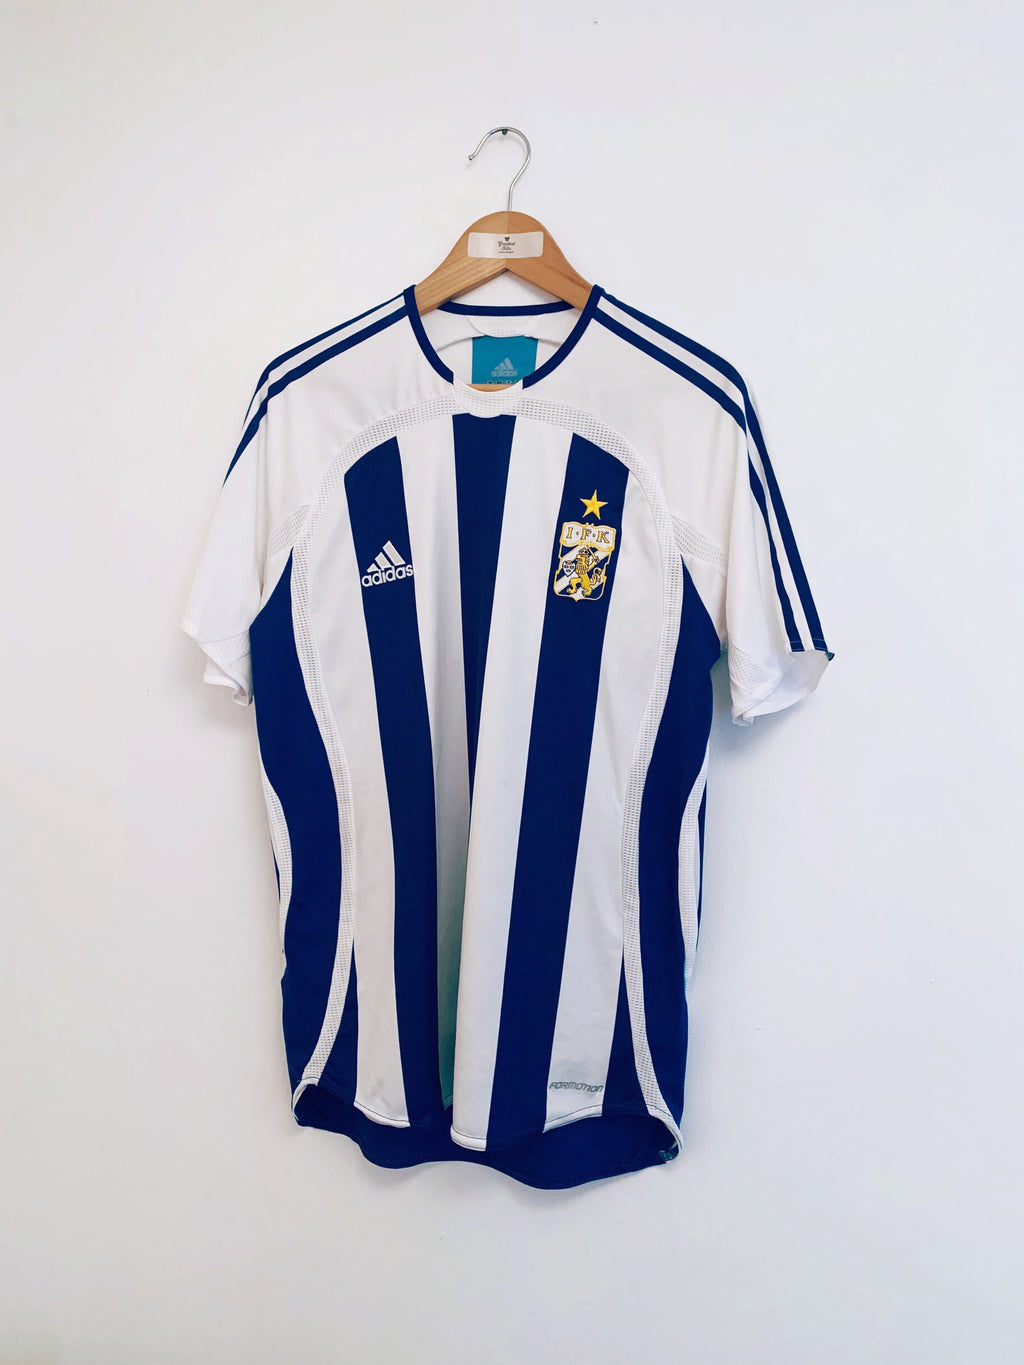 2007 Gothenburg Home Shirt (S) 9/10